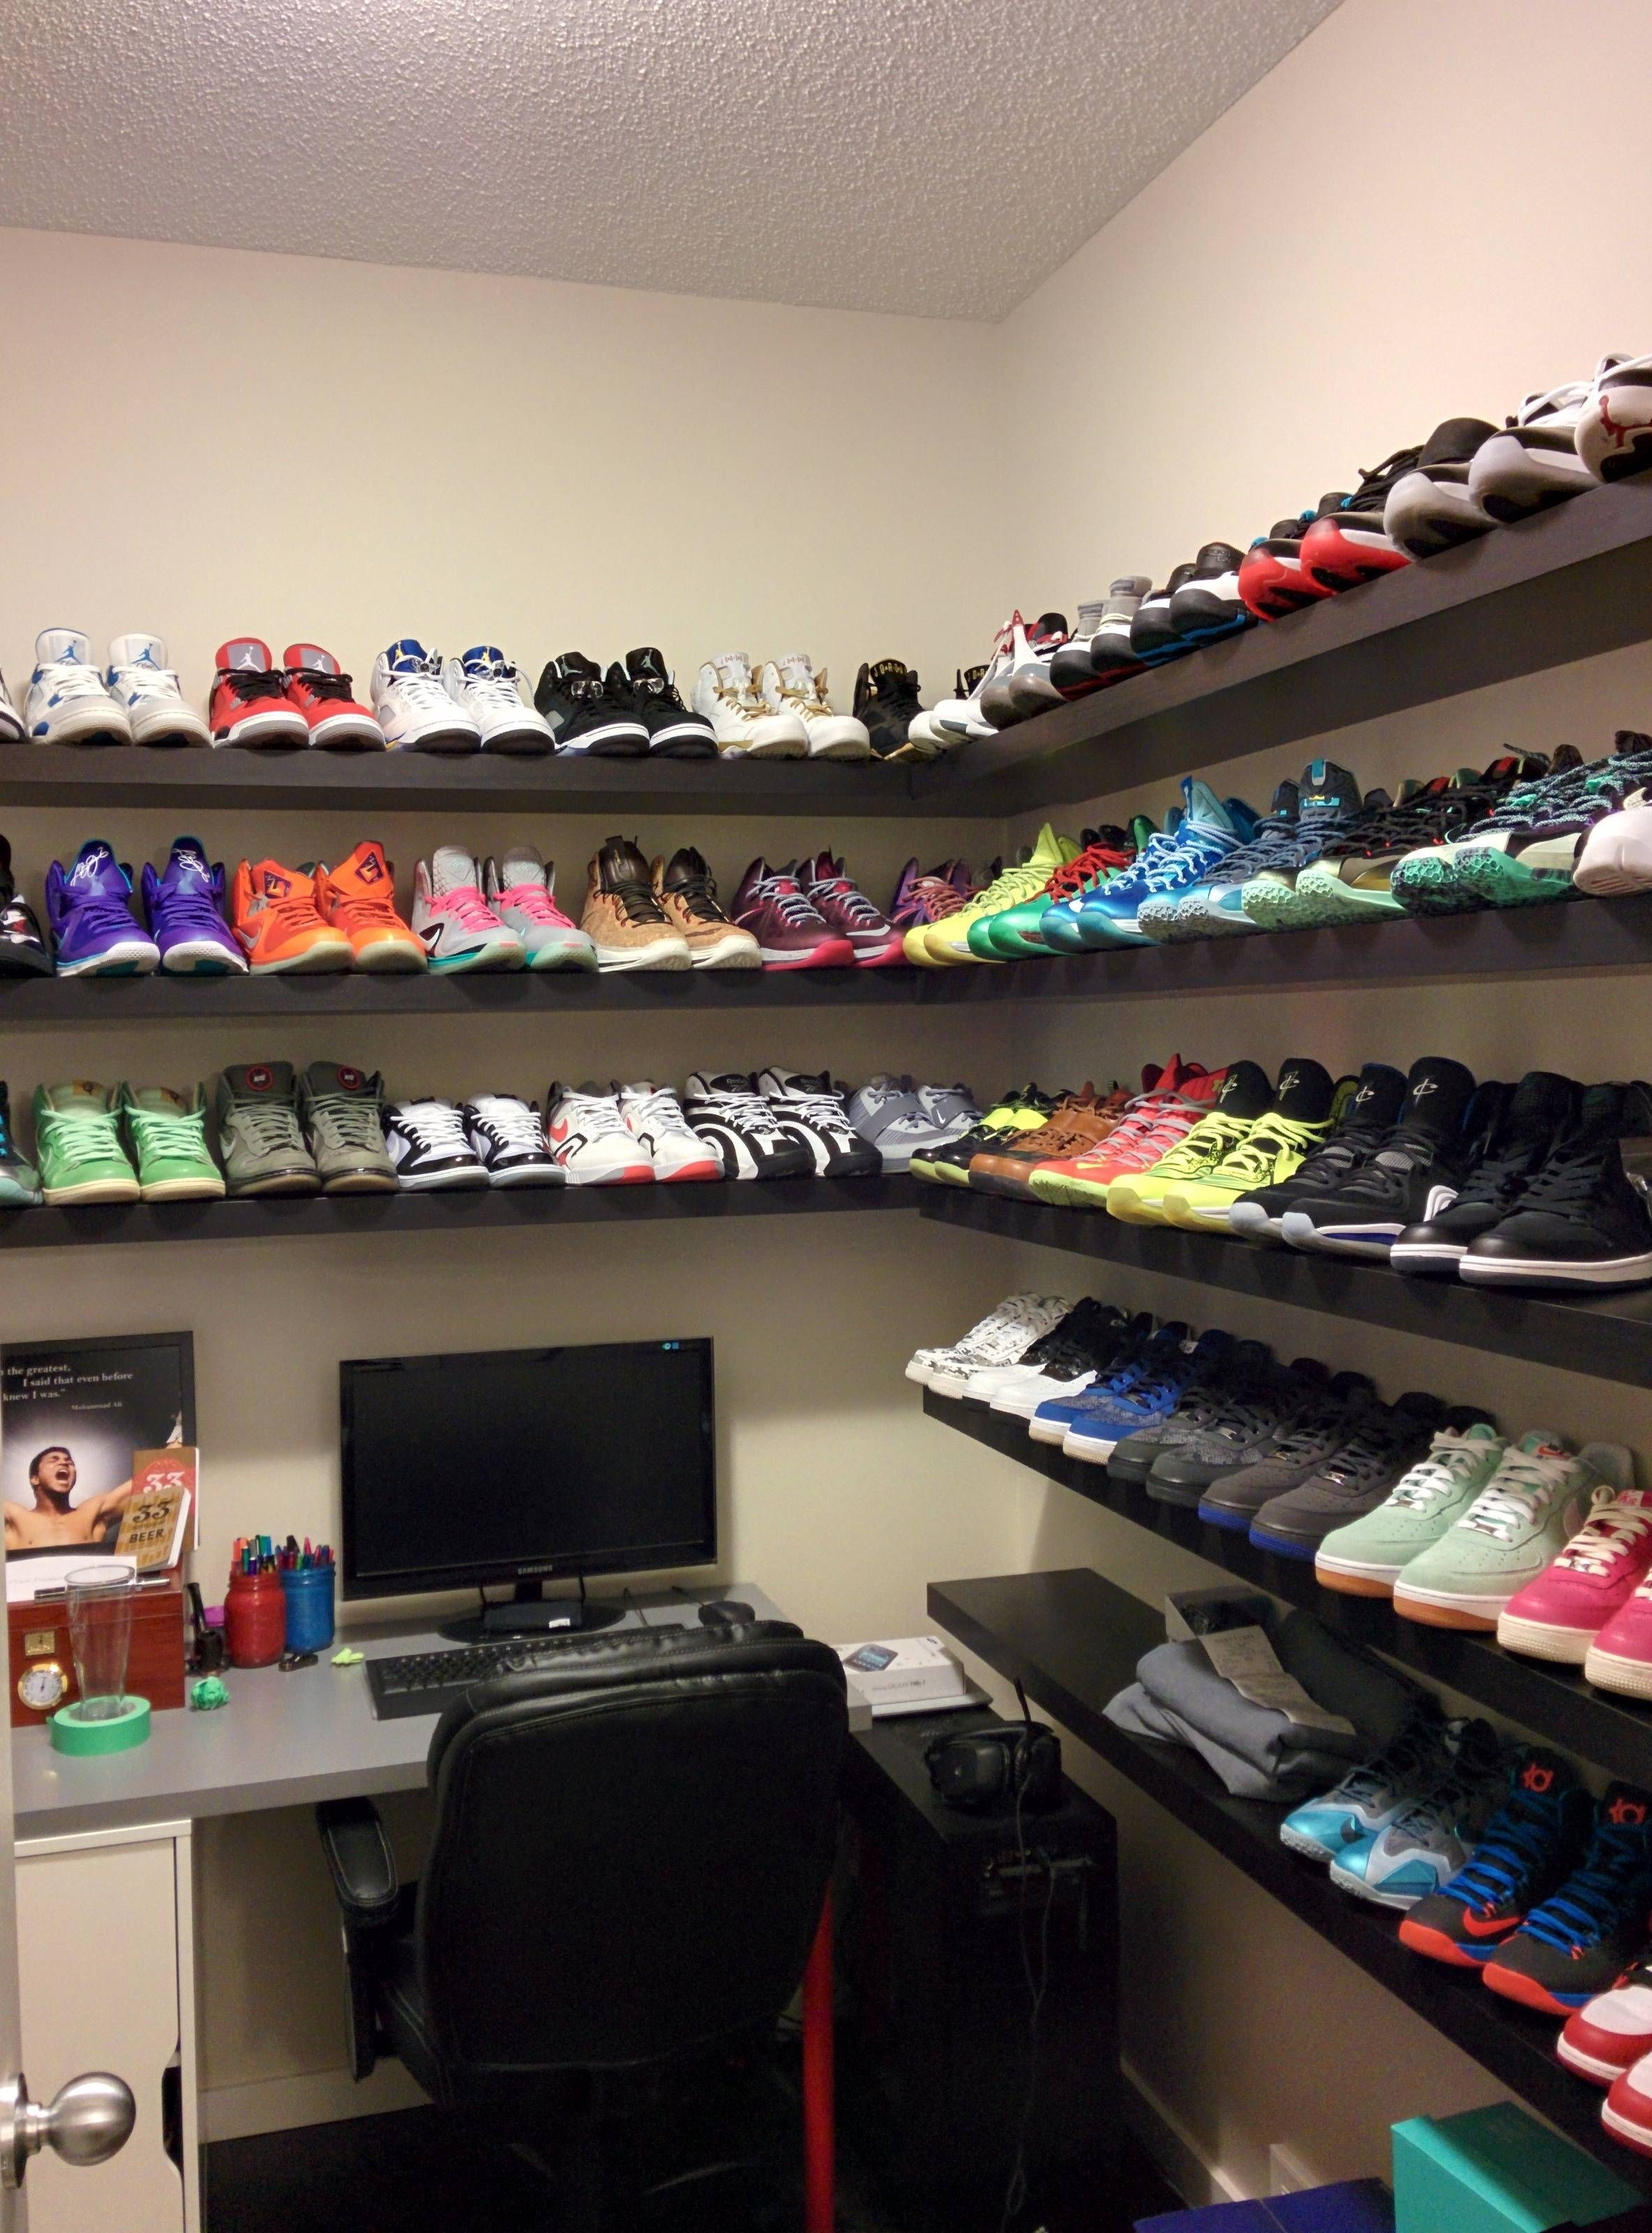 Jordan Shoe Room Google Search Shoe Room Sneakerhead Room